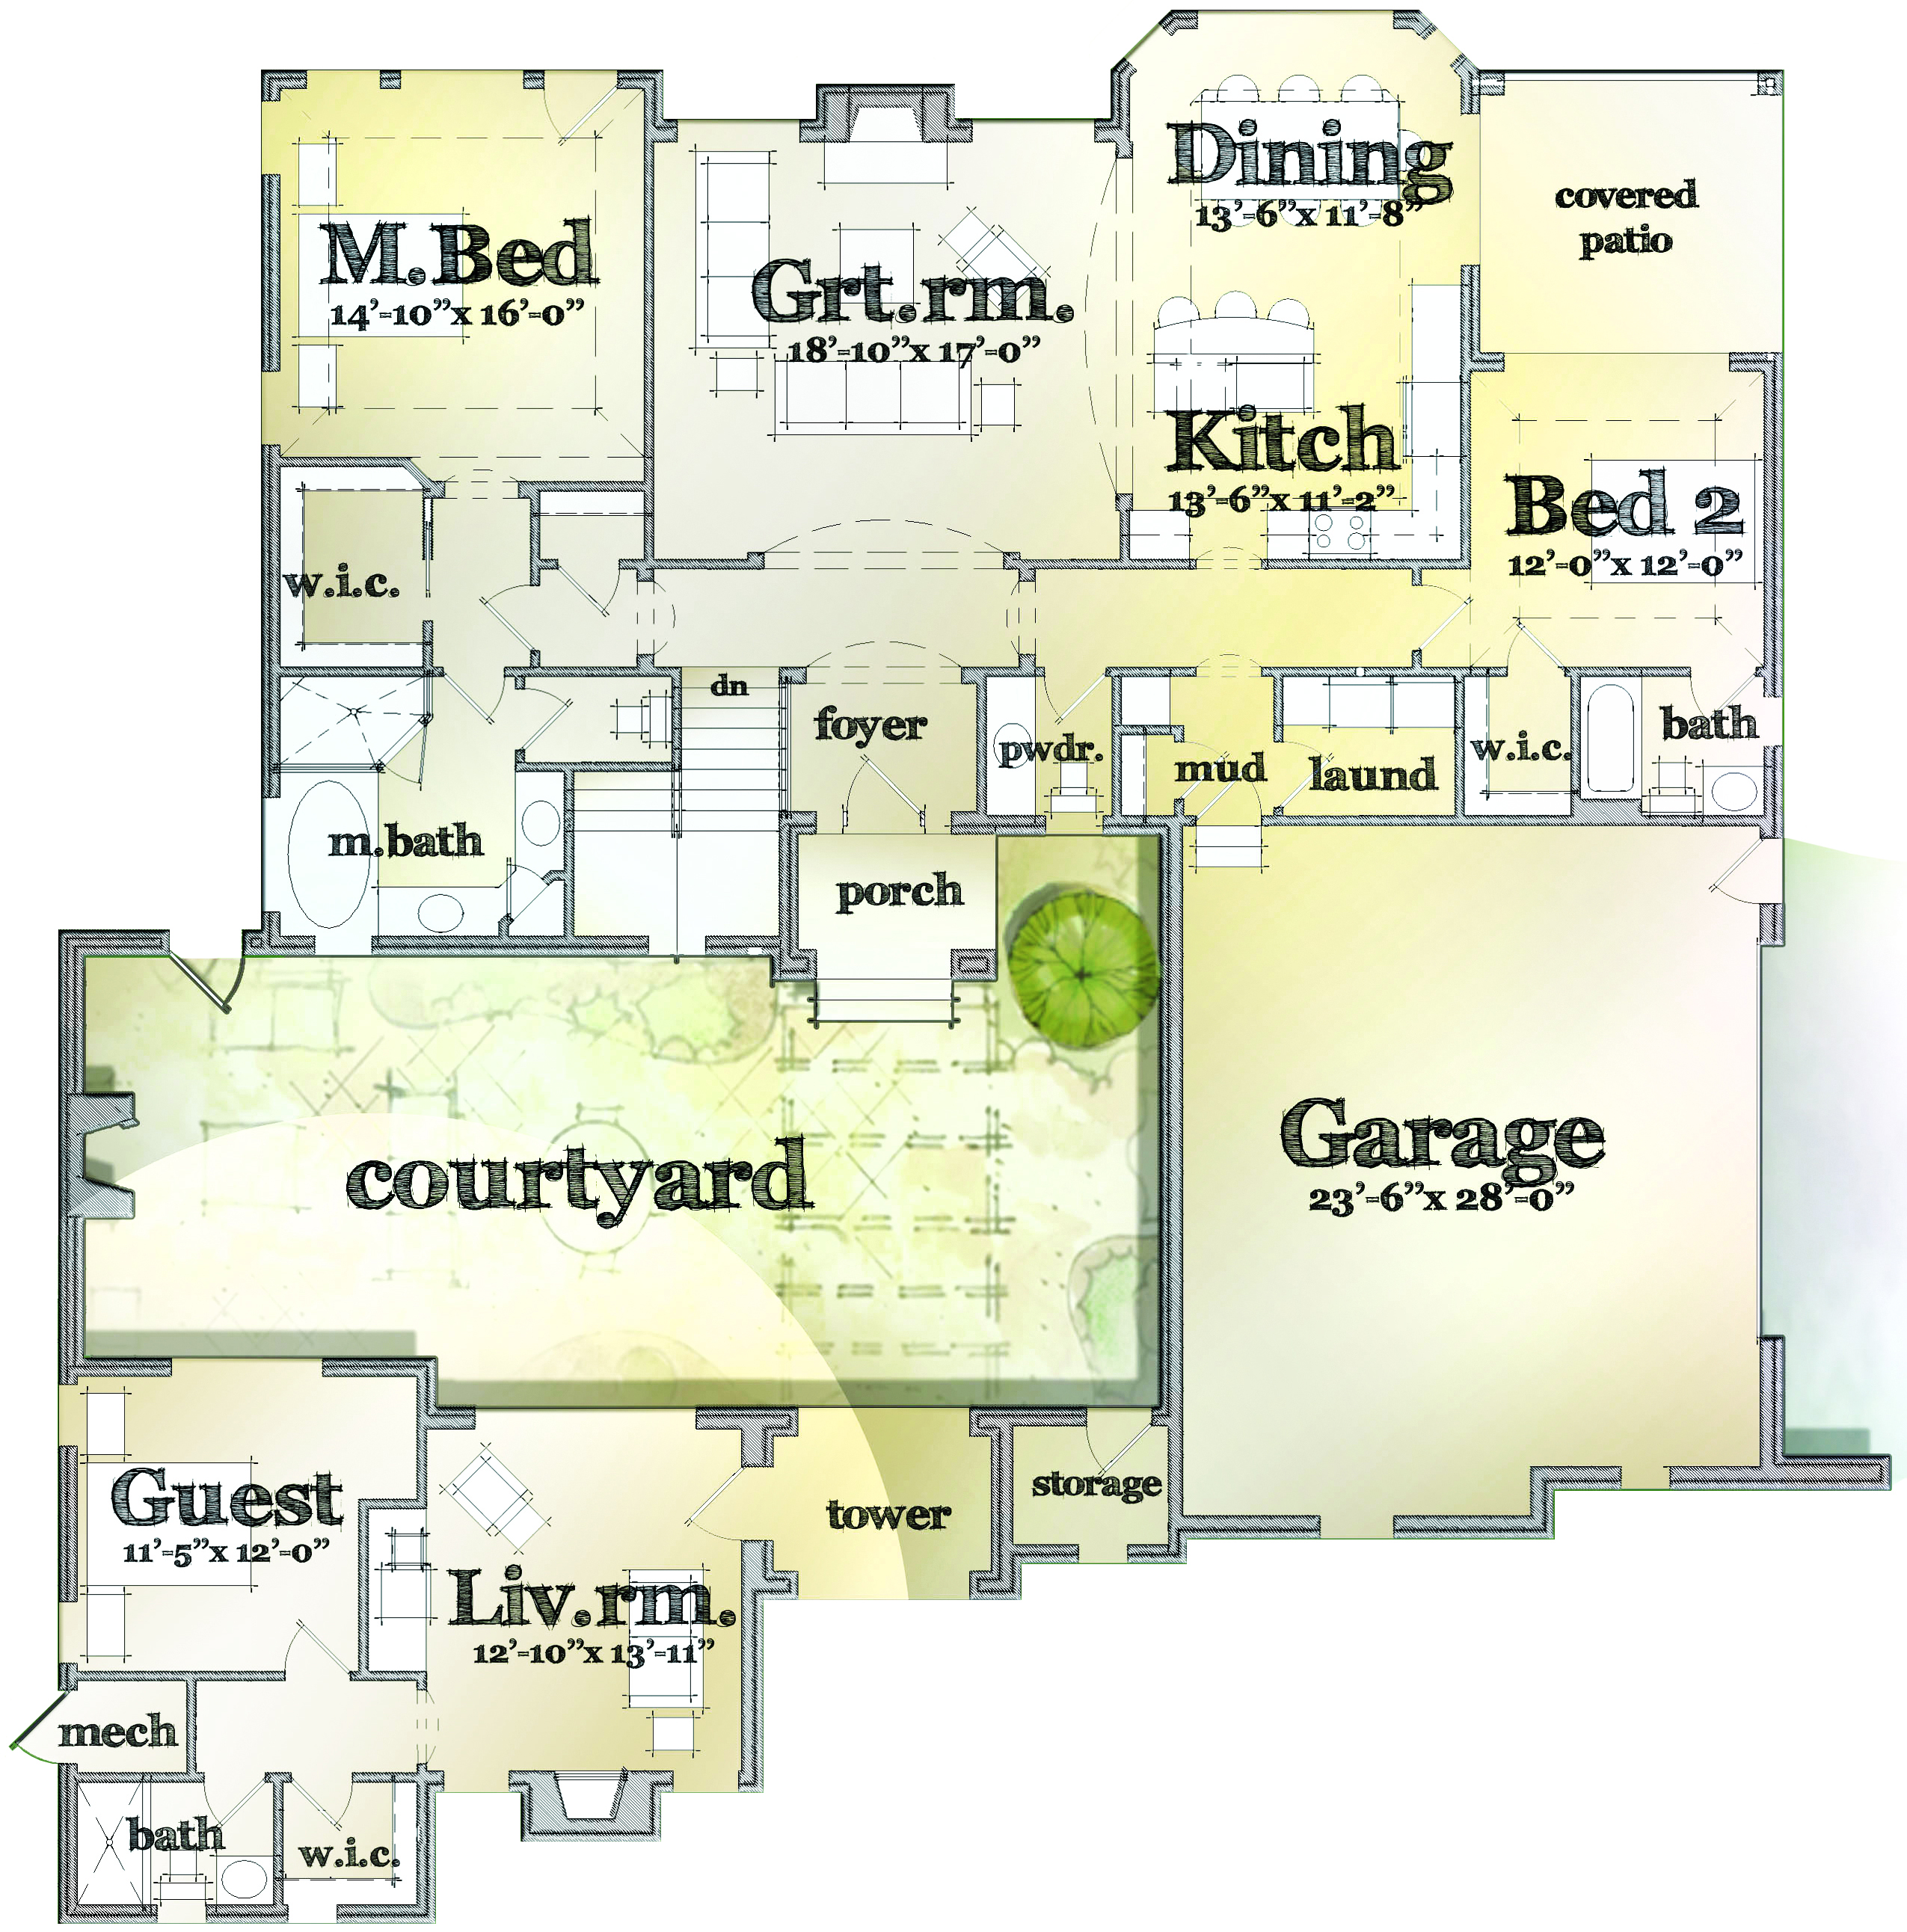 2 Story Villa Floor Plans House Review Casitas And In Law Suites Professional Builder